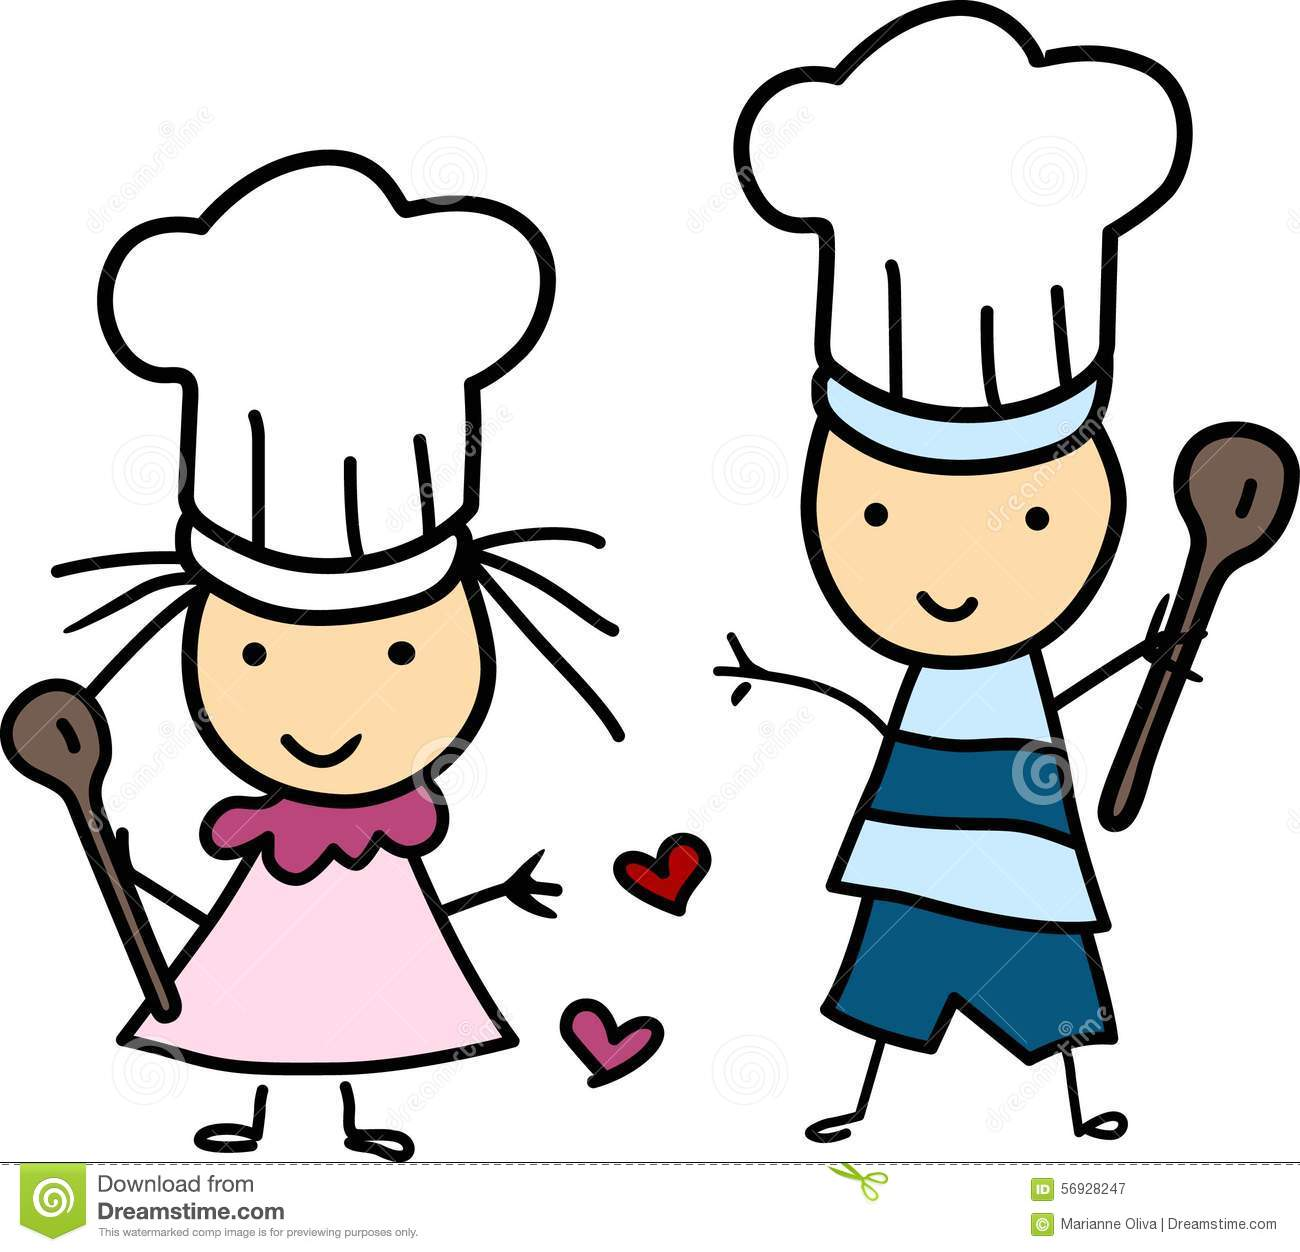 Little chef clipart graphic black and white library Little Chef Clip Art – Clipart Free Download graphic black and white library